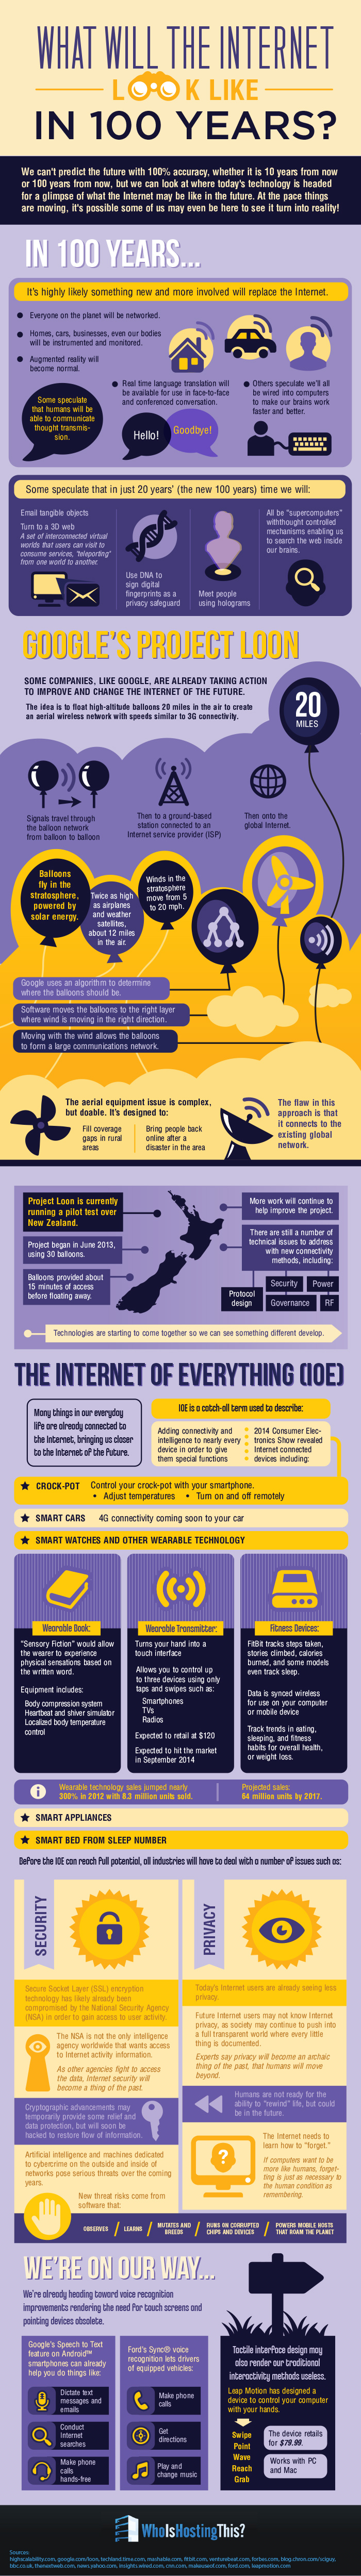 What Will the Internet Look Like in 100 Years? [Infographic]